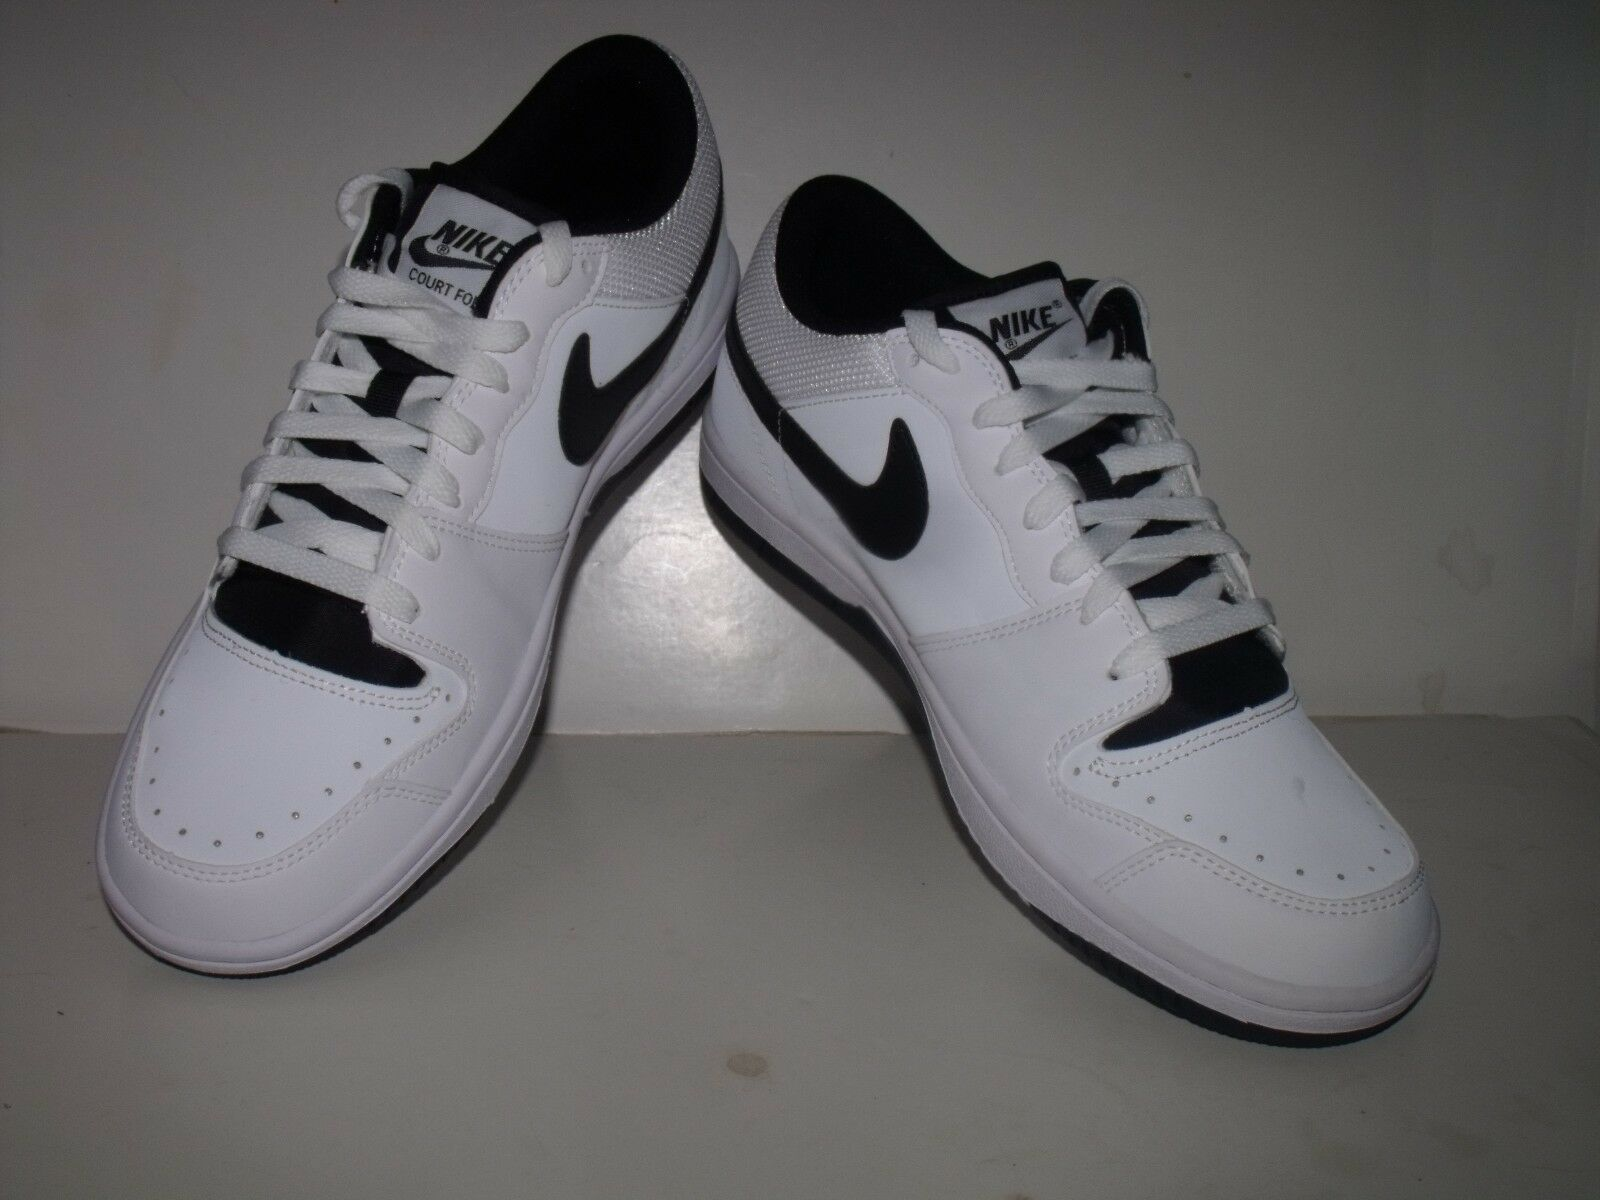 Nike Air Force Low Hommes Casual Casual Hommes Training Lifestyle Chaussure NEW Hommes Sz 11.5 31fb74